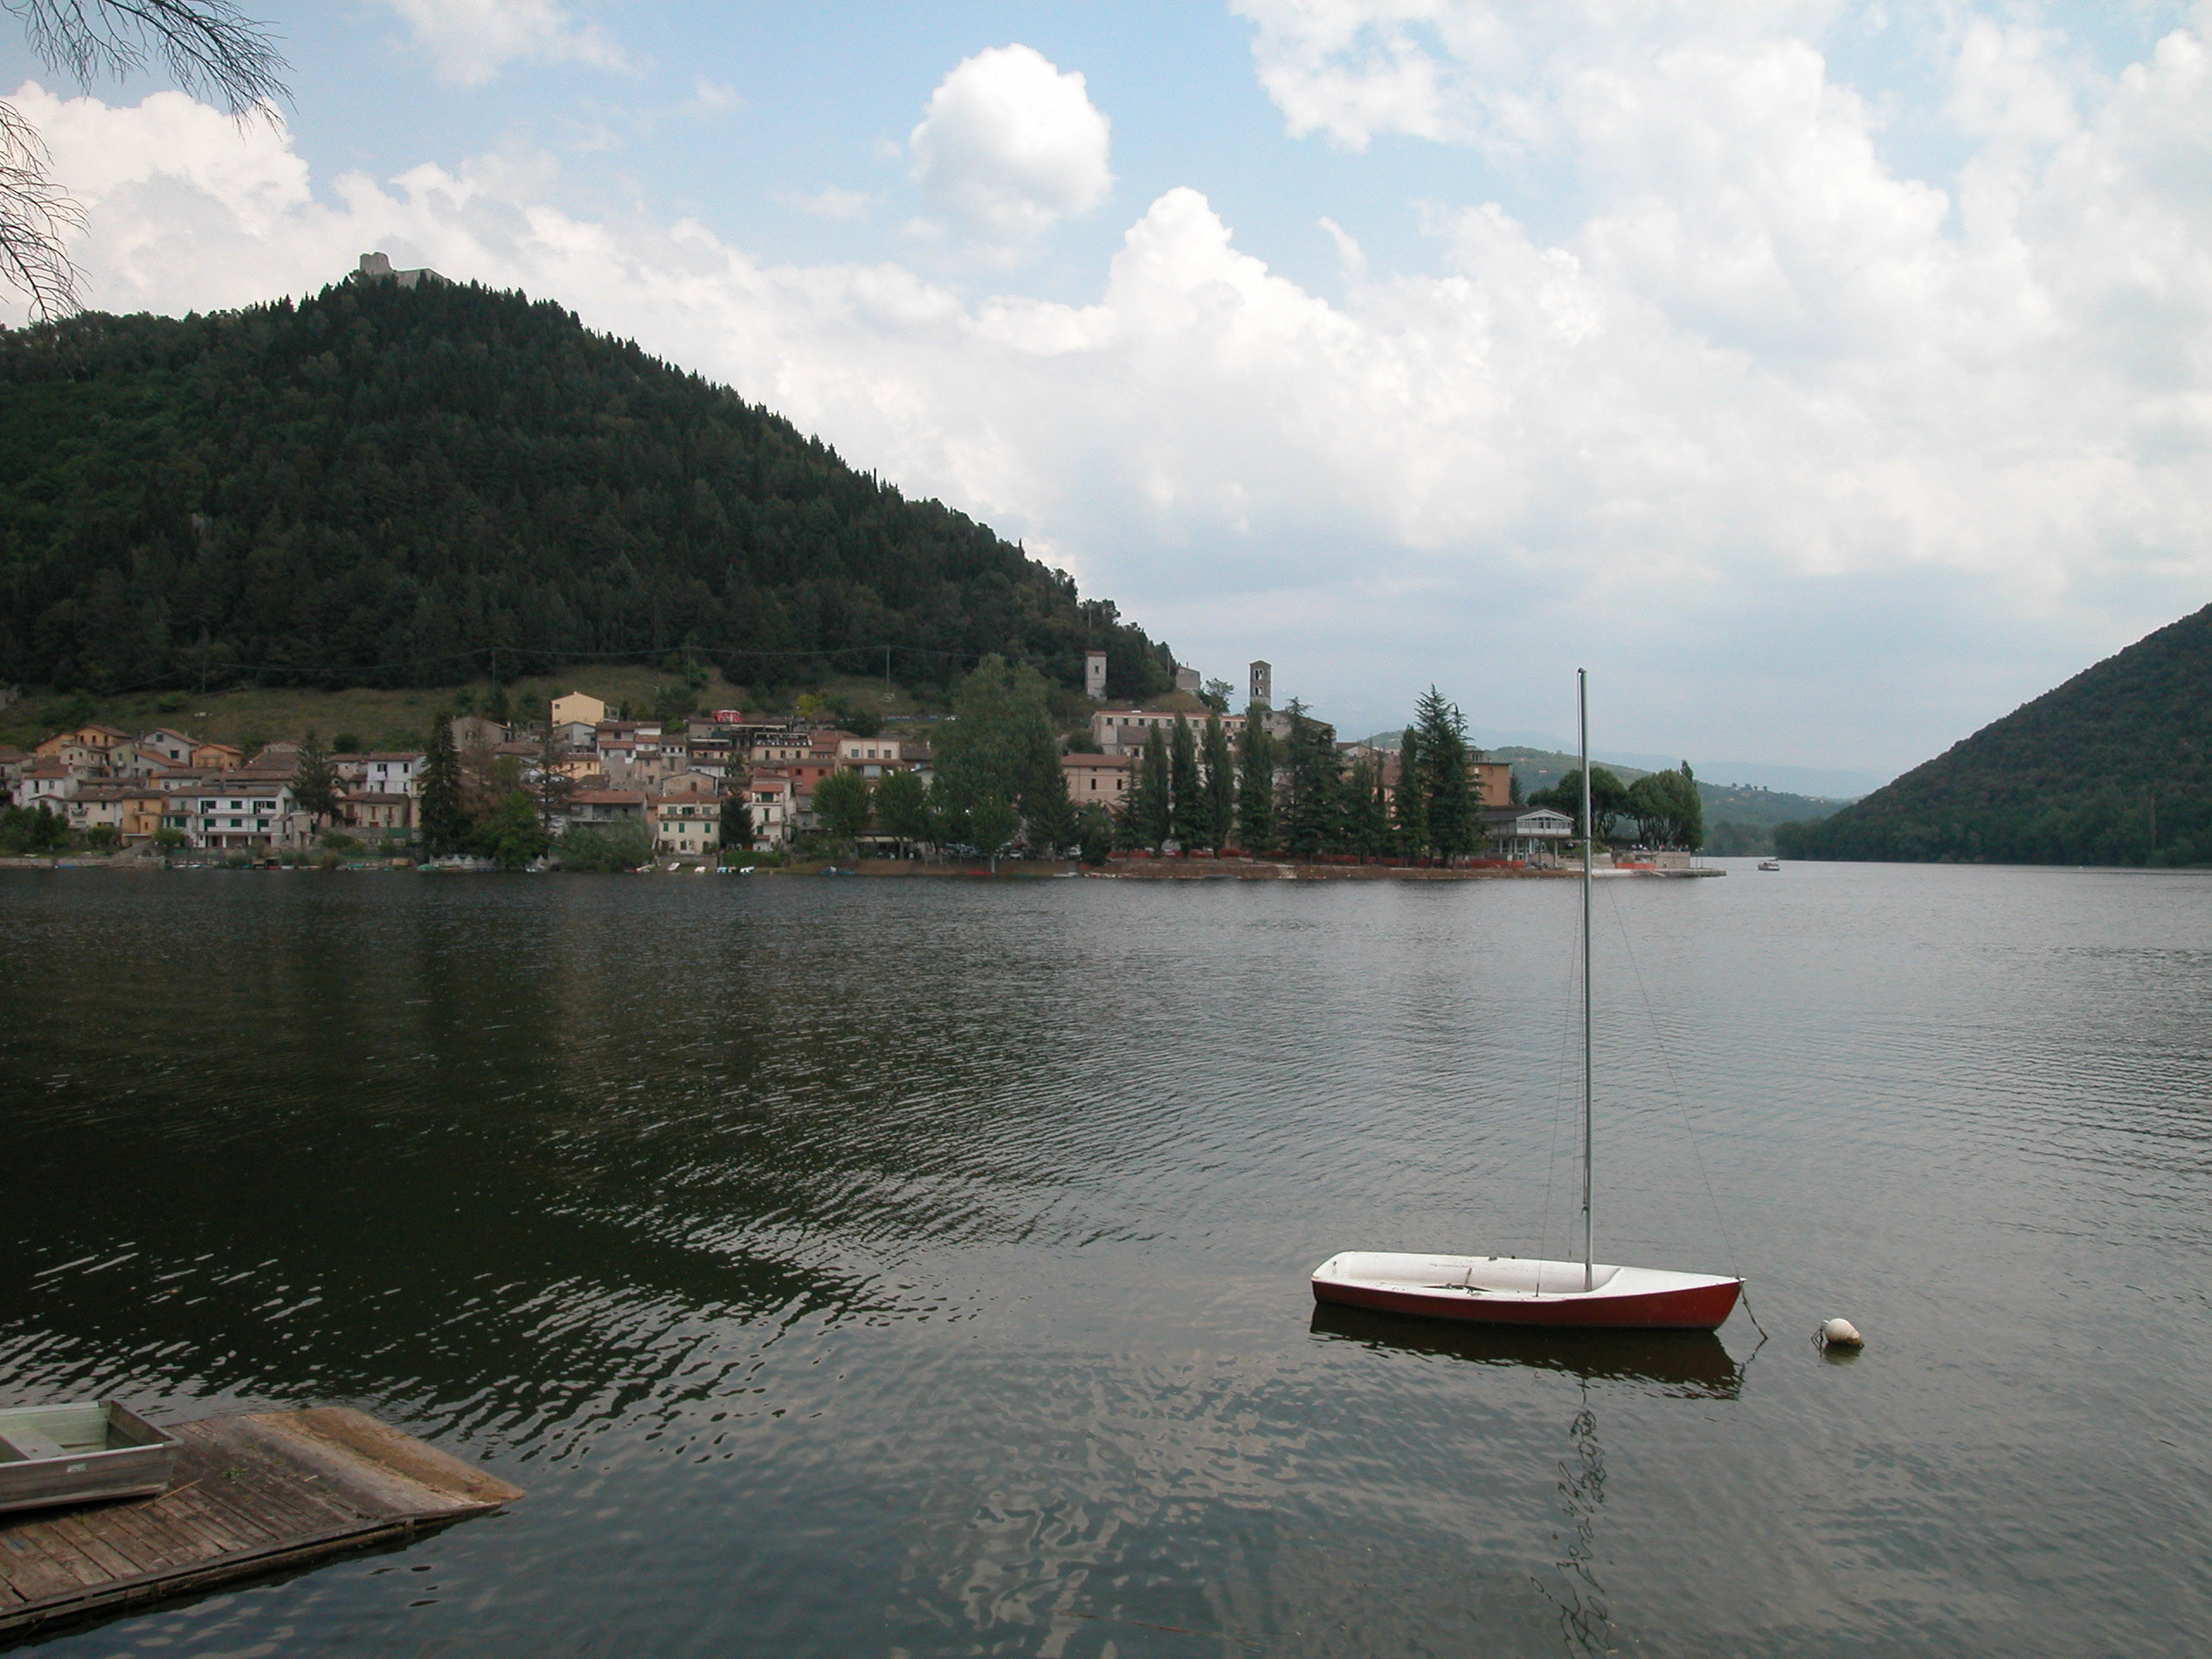 Rowing in Piediluco